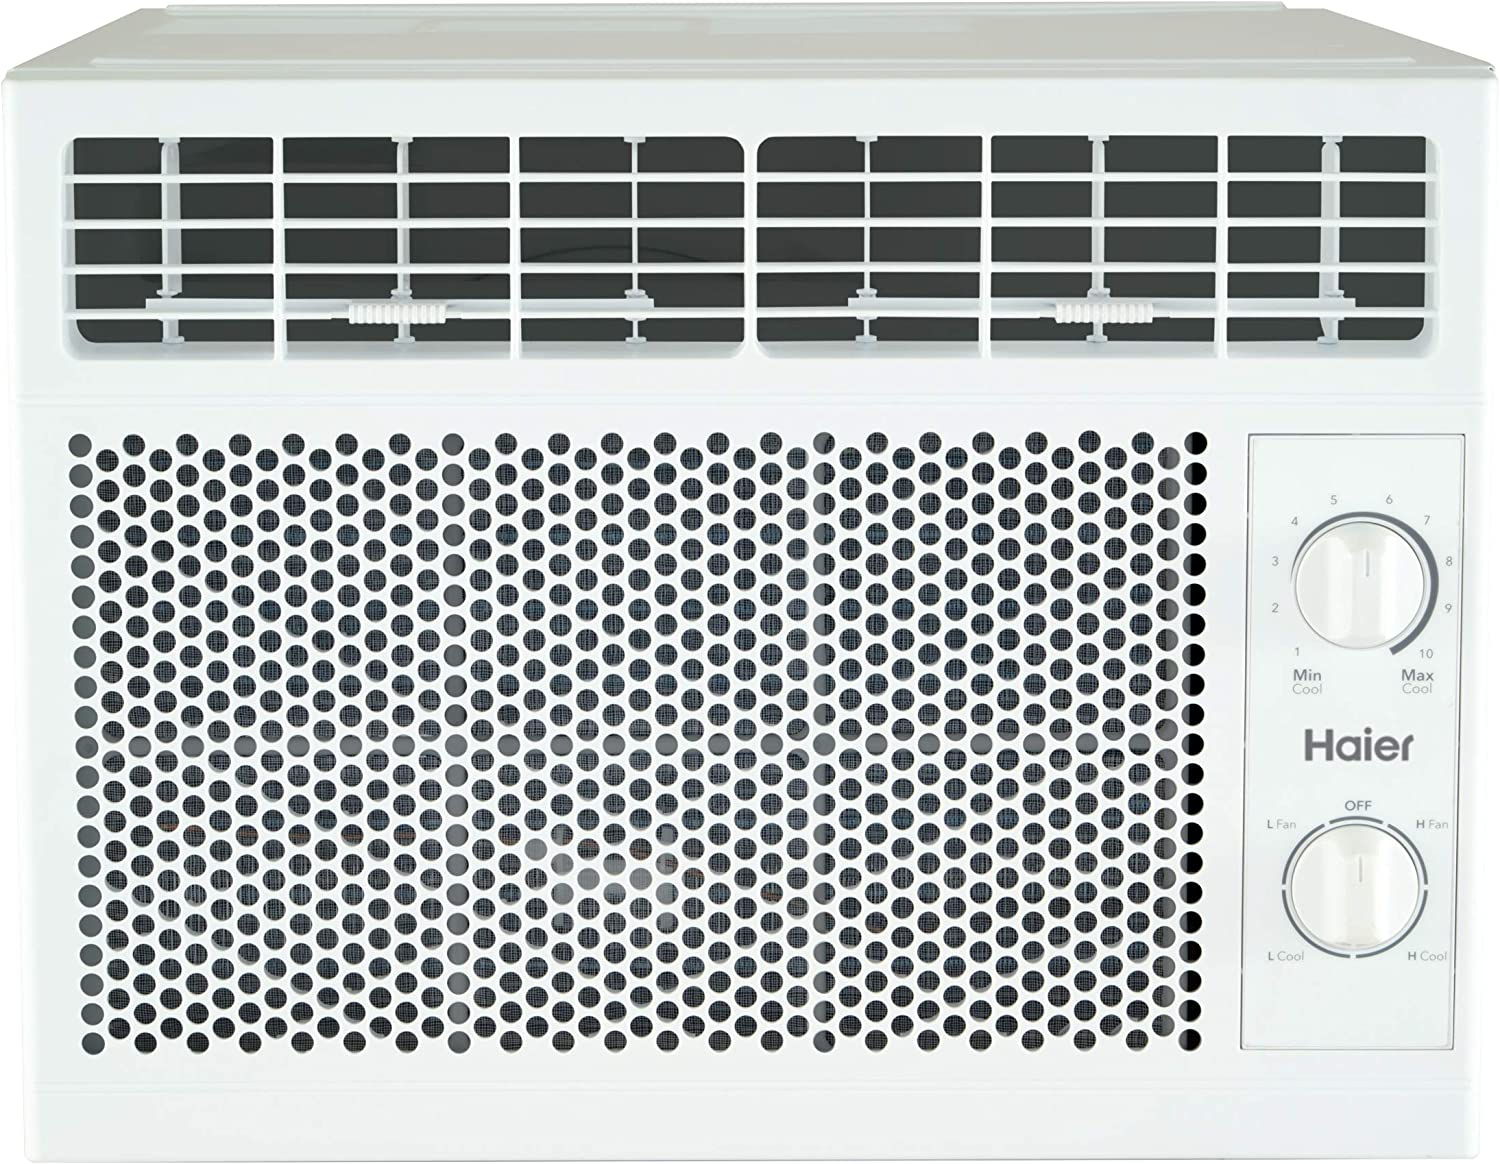 Haier 5,050 BTU Mechanical Window Air Conditioner for Small Rooms up to 150 sq ft, 5000 115V, White